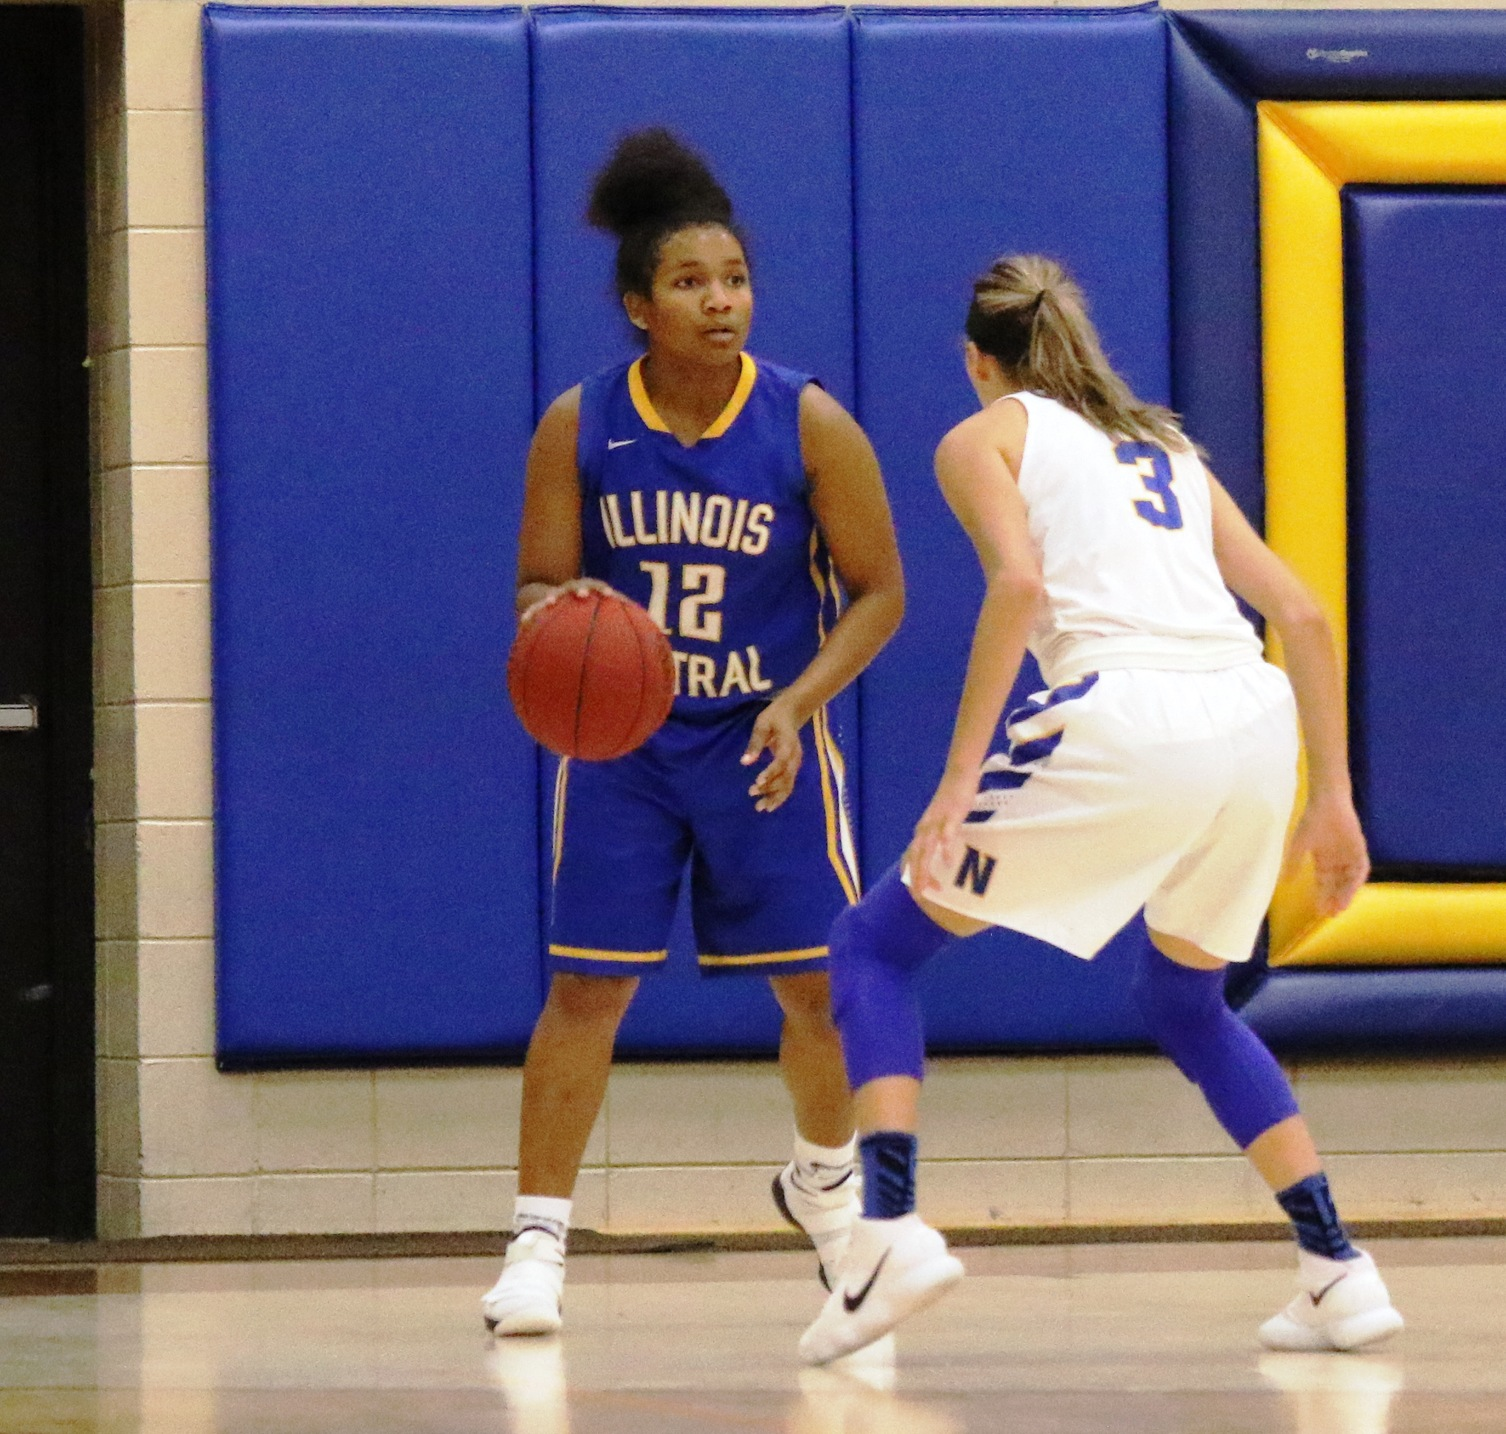 NIACC's Taylor Laabs defends during Friday's game against Illinois Central.